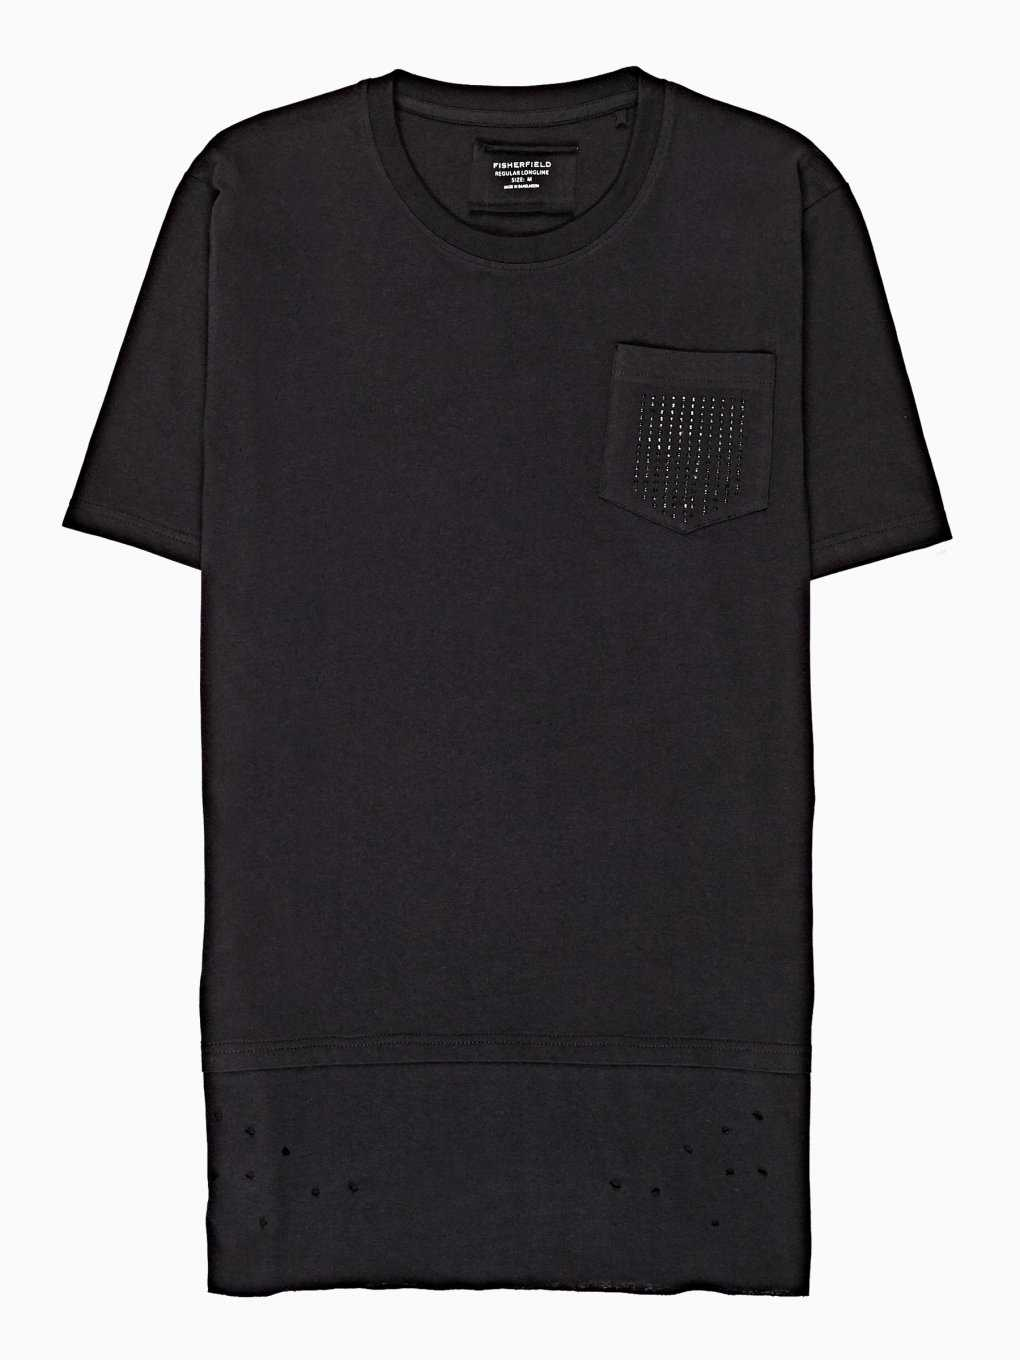 Longline t-shirt with embelishment